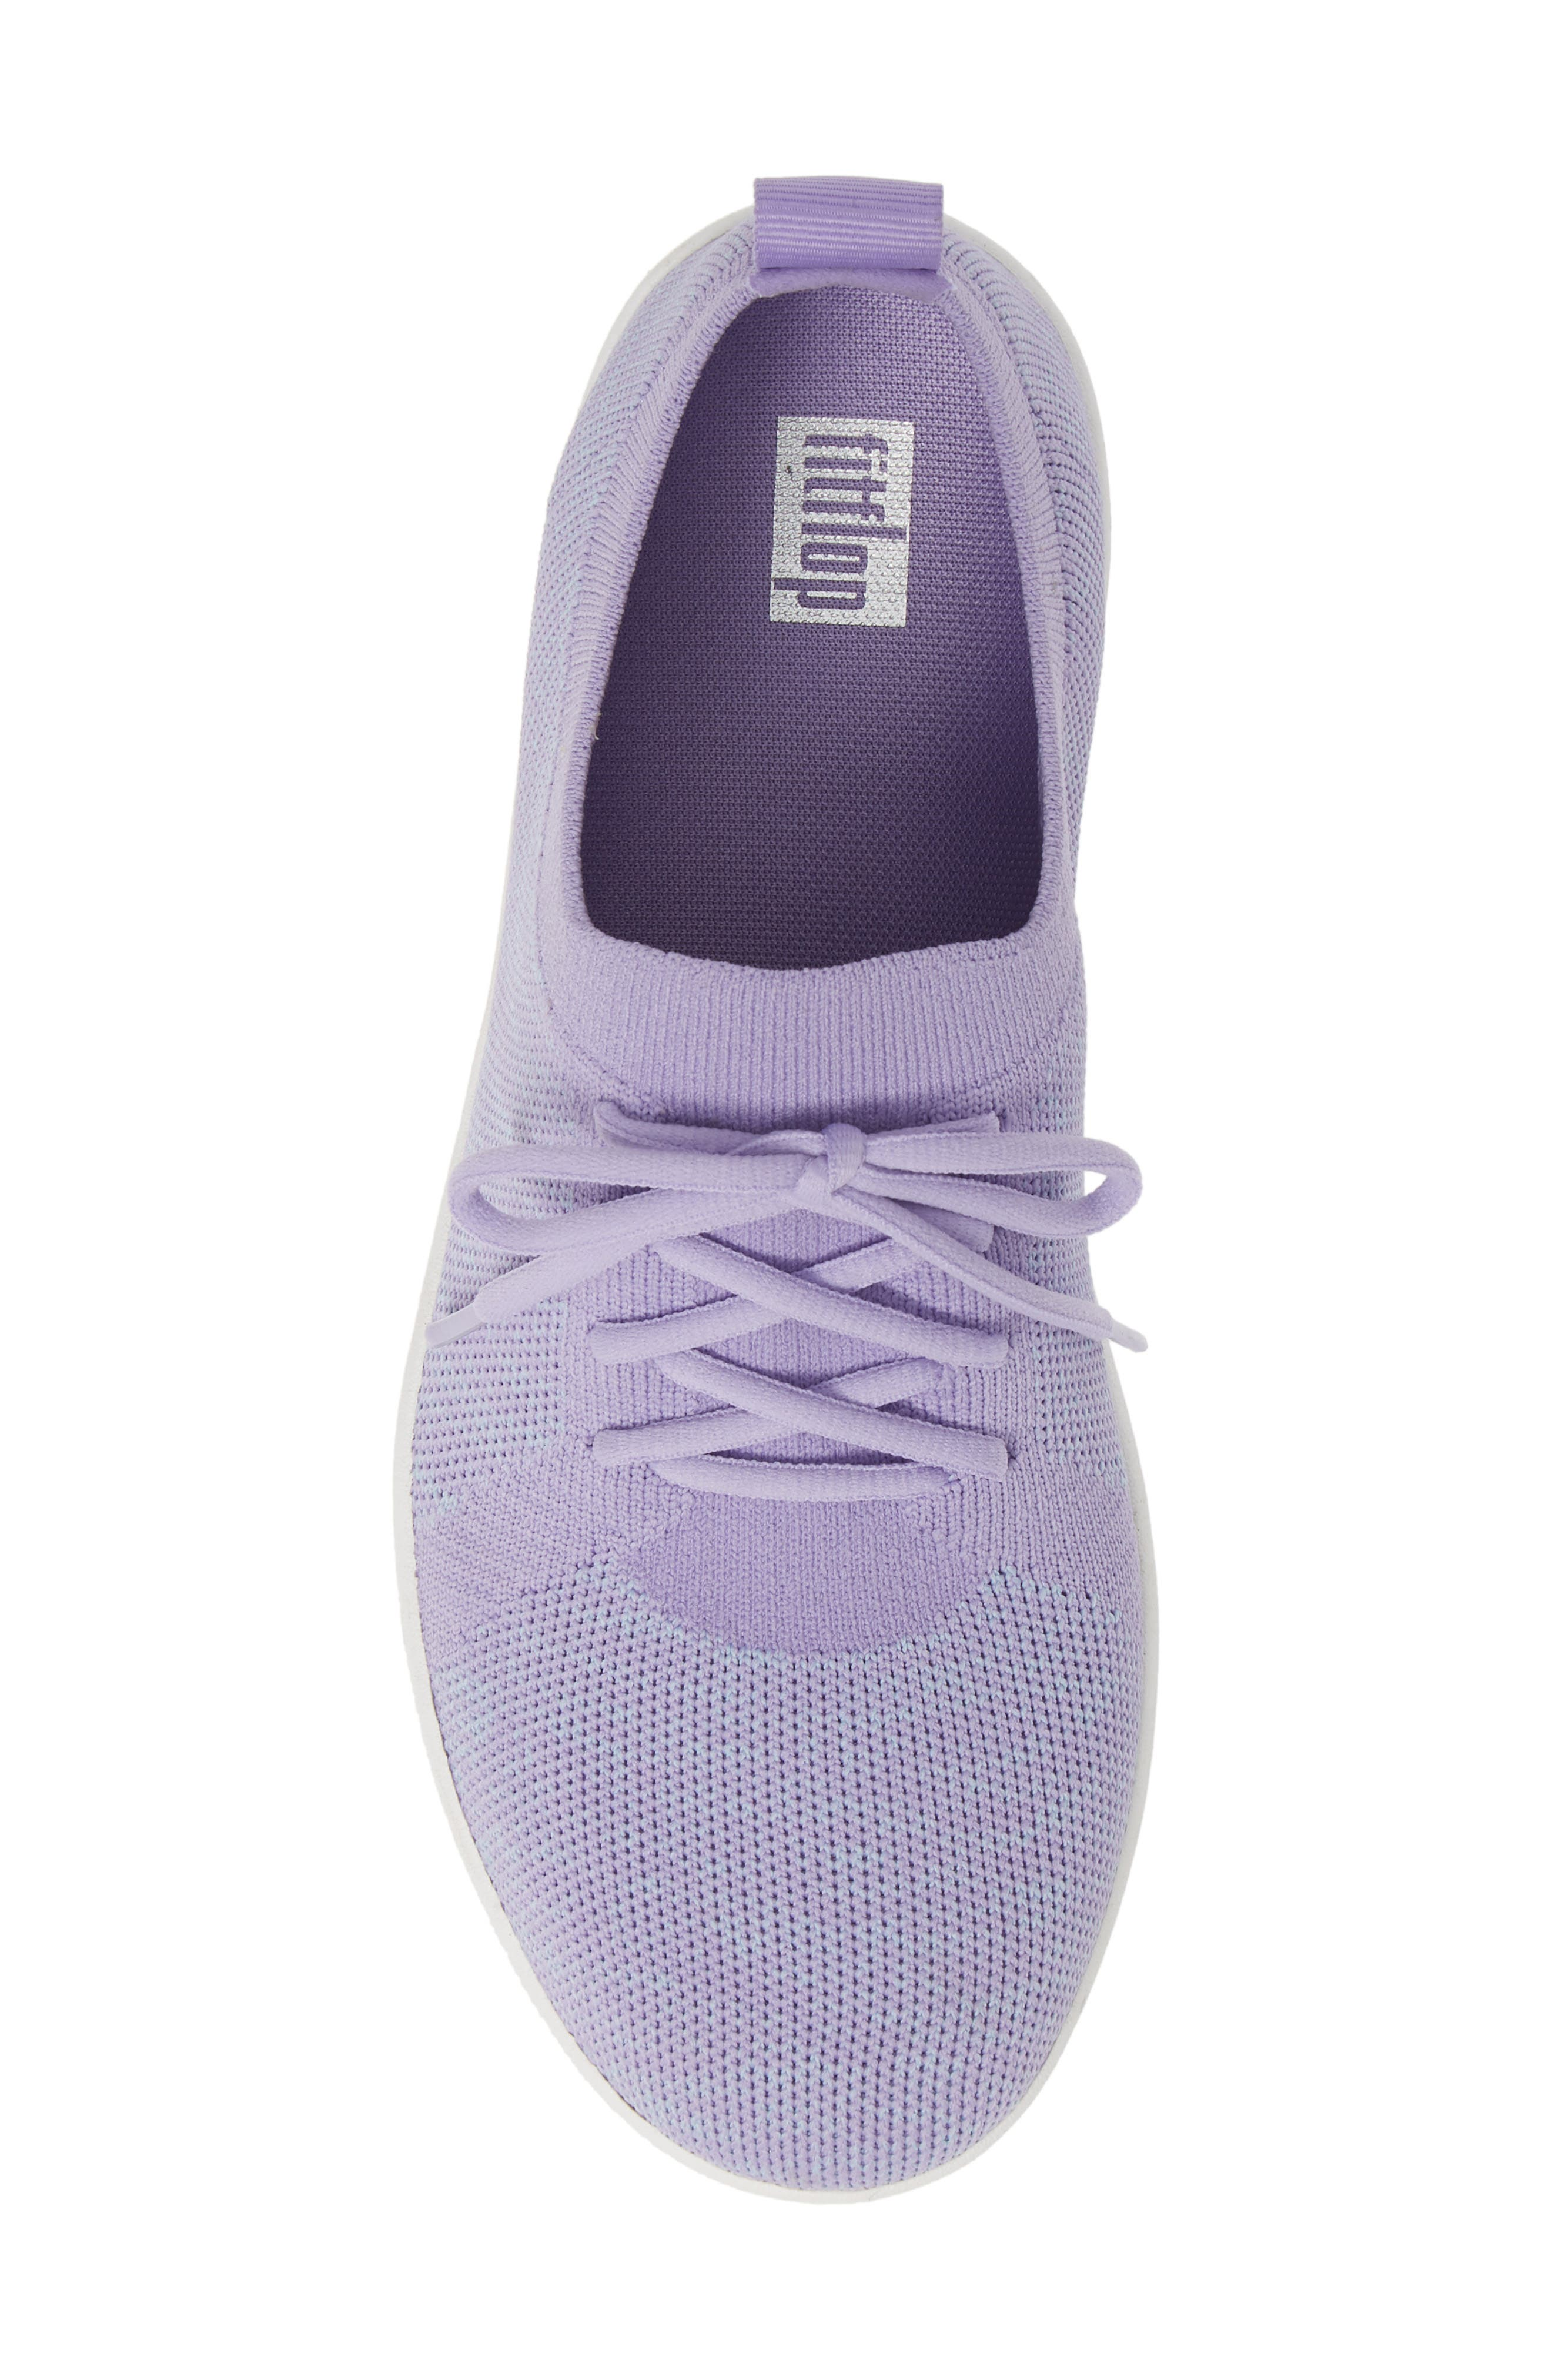 F-Sporty Uberknit<sup>™</sup> Sneaker,                             Alternate thumbnail 5, color,                             FROSTED LAVENDER MIX